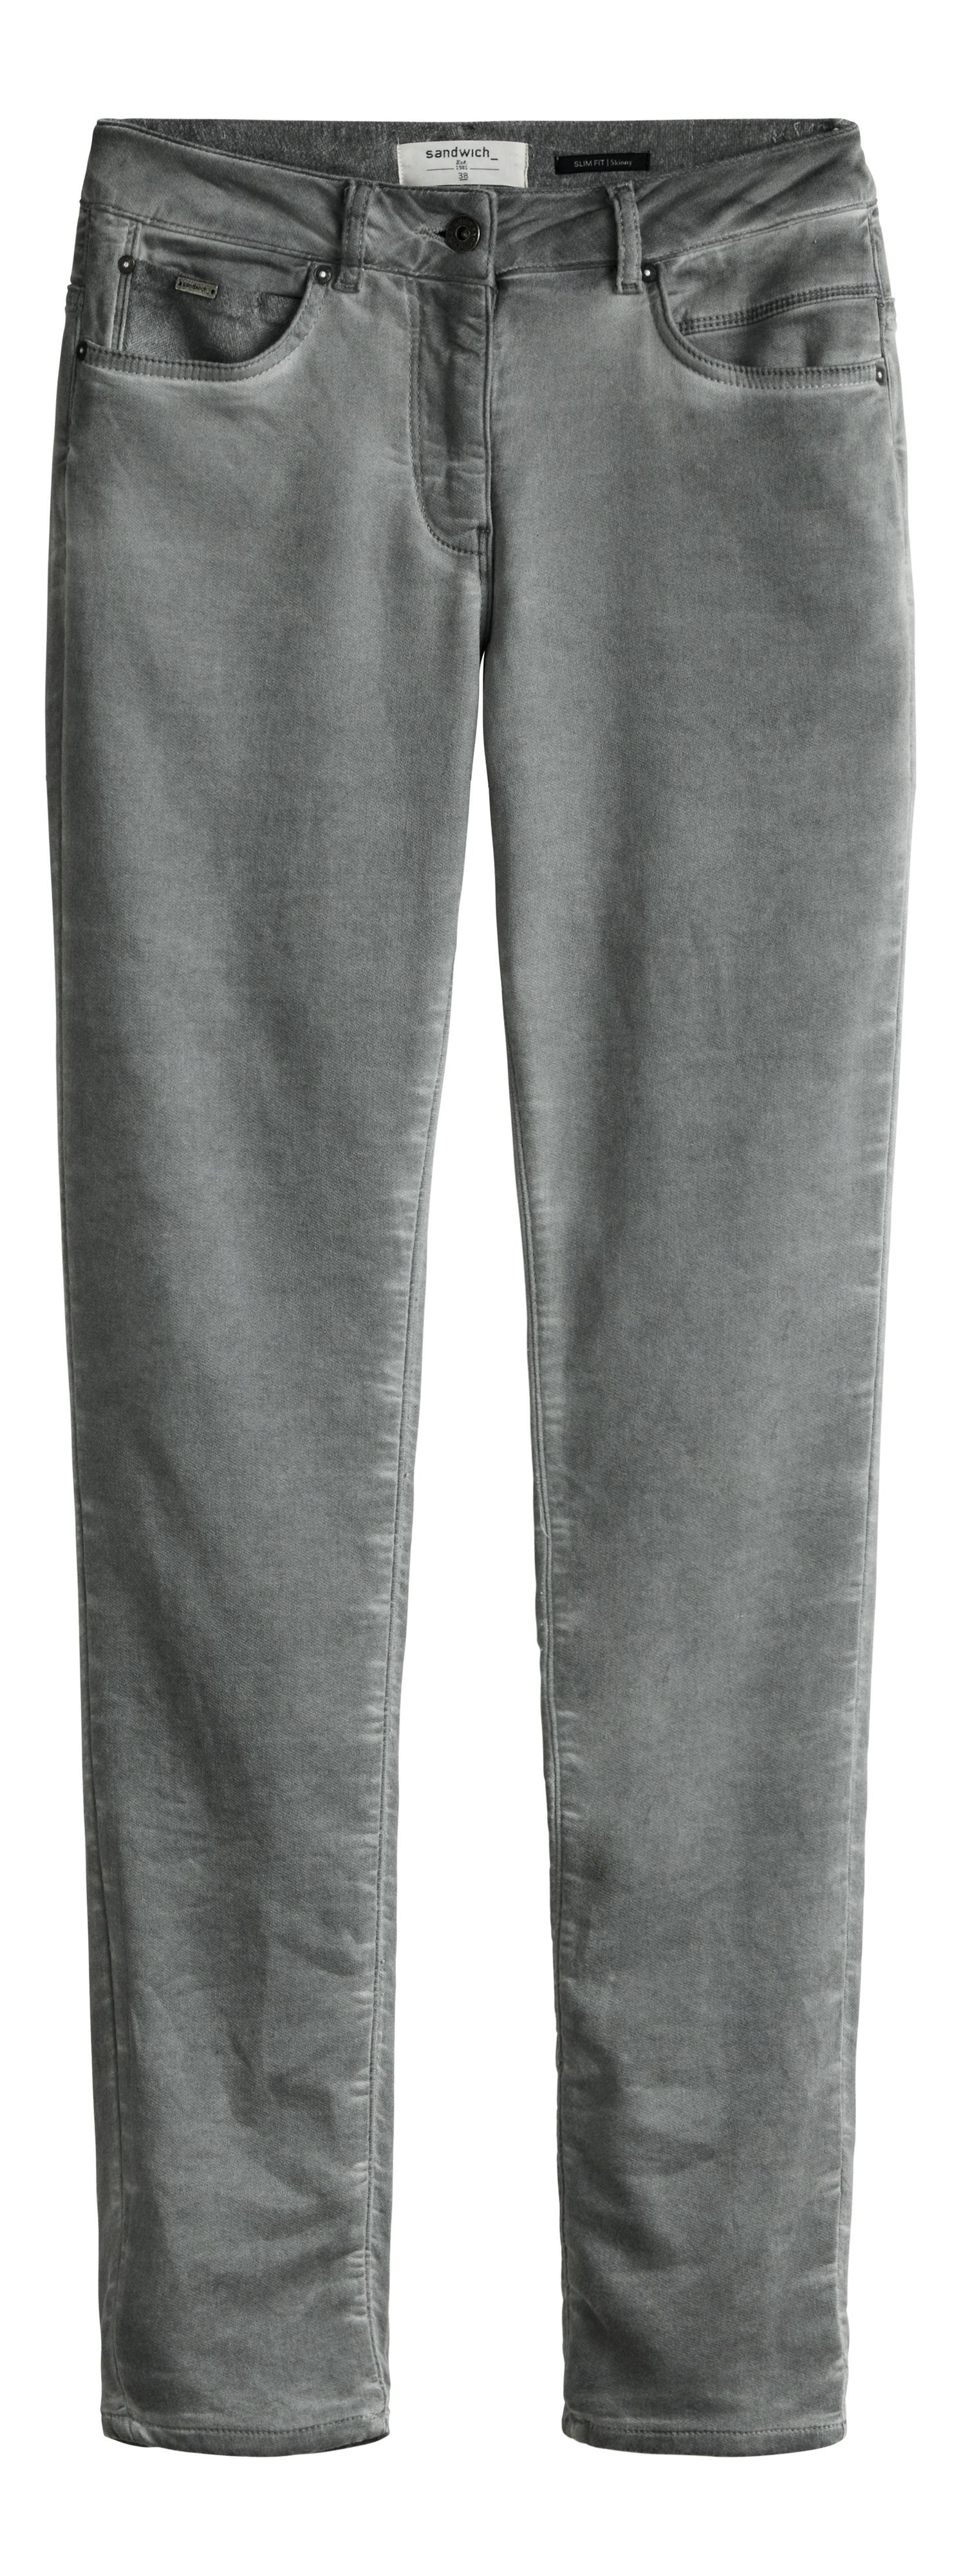 Sandwich Sandwich Supersoft jeans, Grey